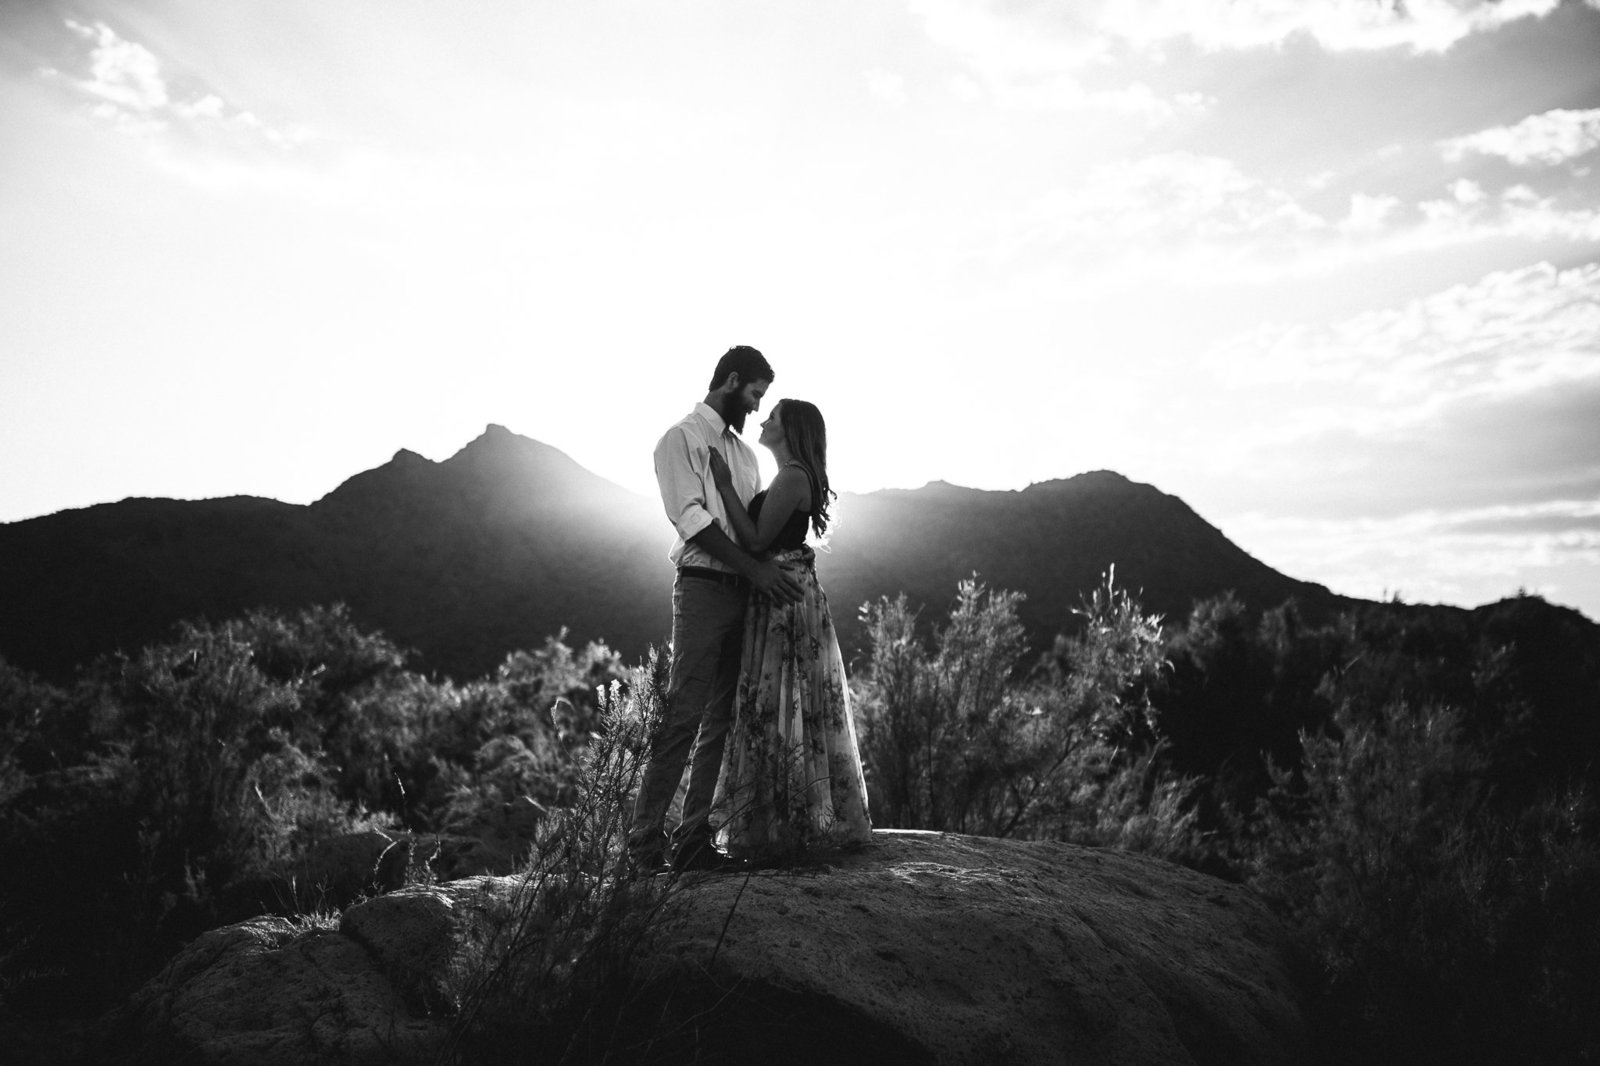 Enagagement portrait in front of a mountain in Mesa, AZ